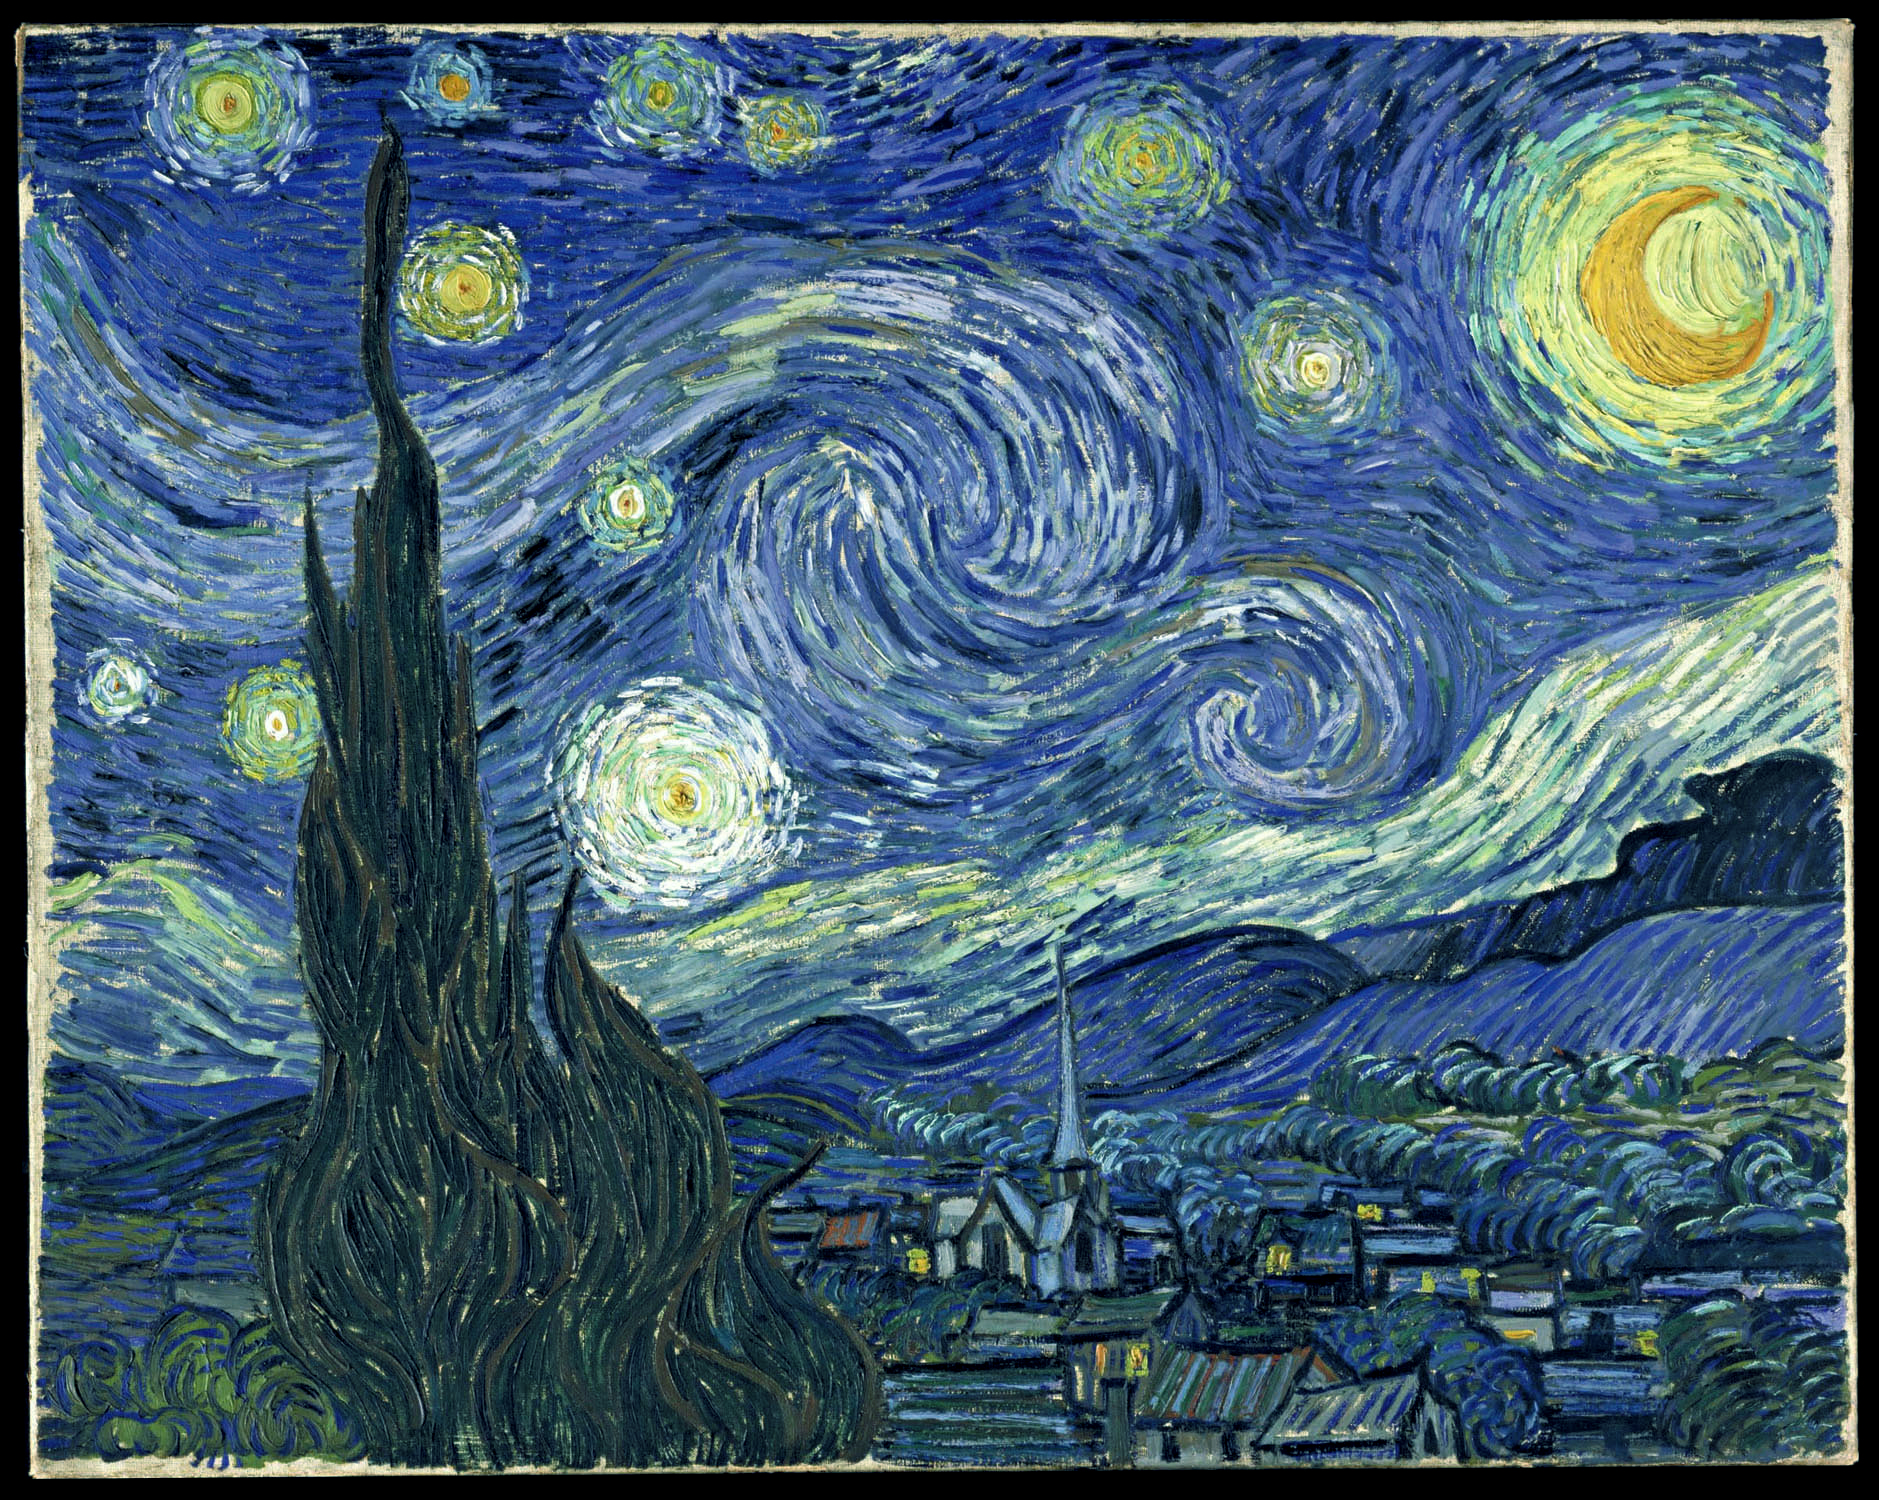 File:VanGogh-starry night ballance1.jpg - Wikipedia, the free ...van gogh